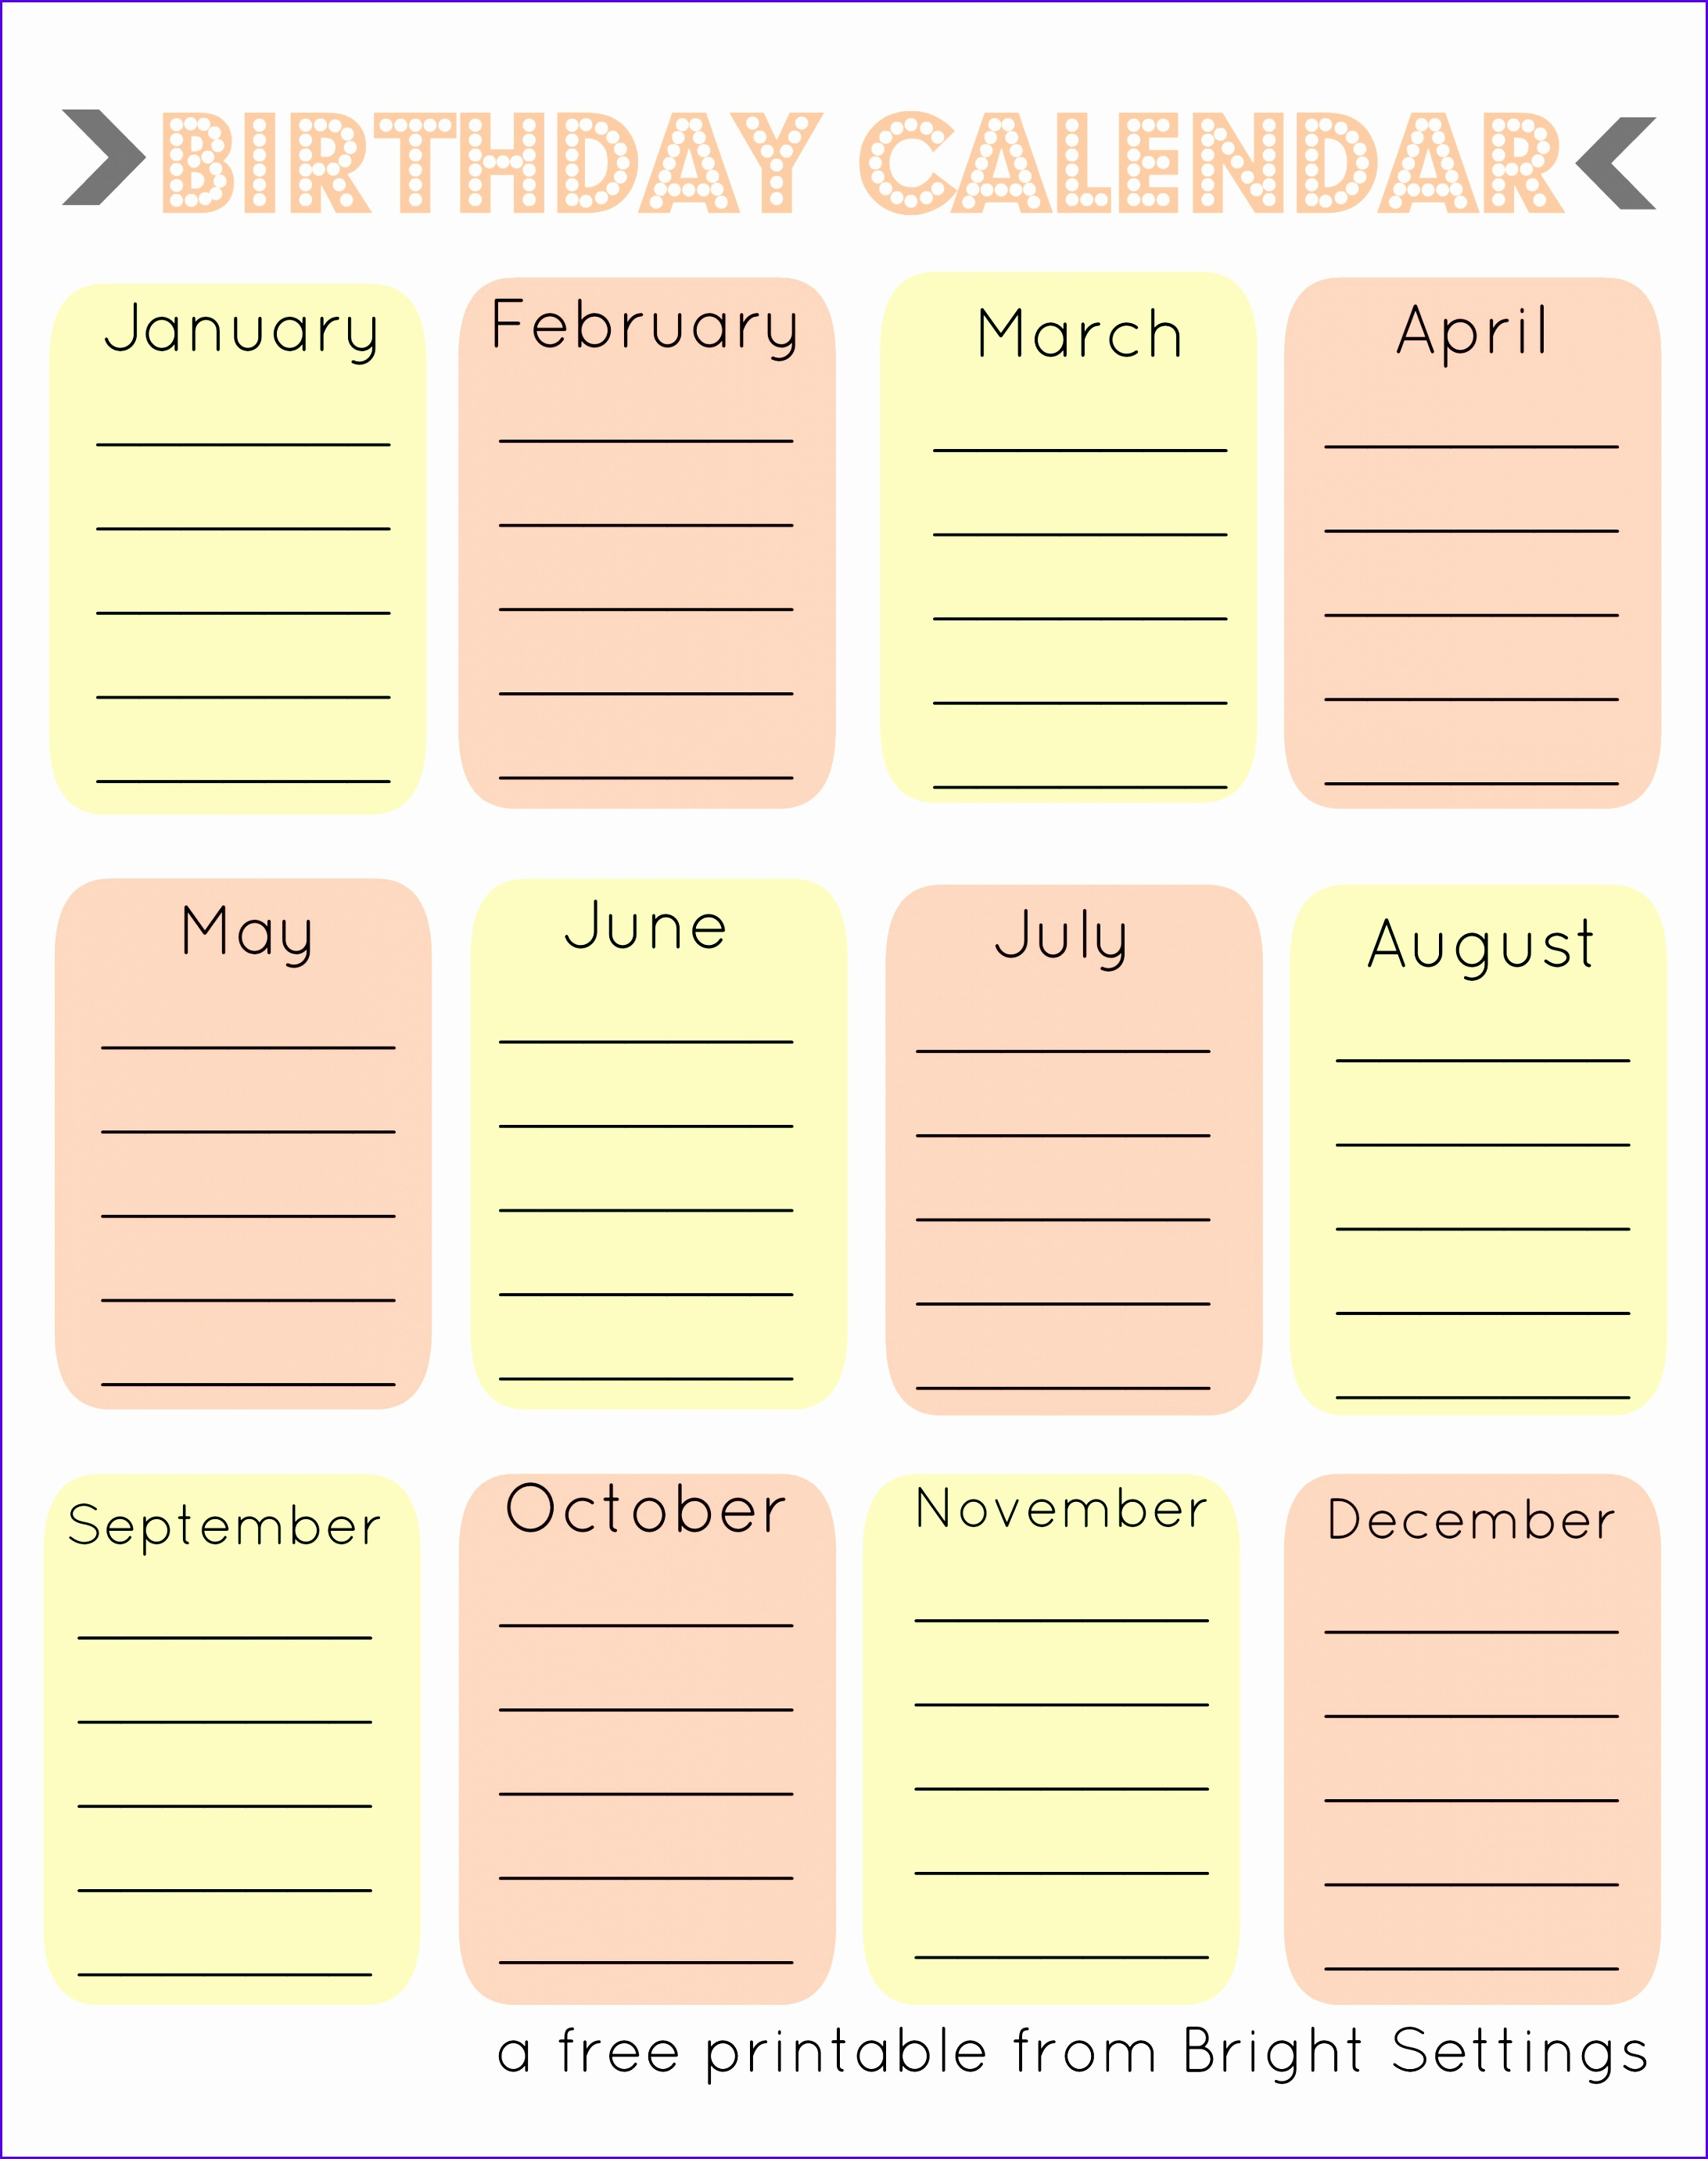 blank birthday calendar free printable birthday calendar templates 21842760